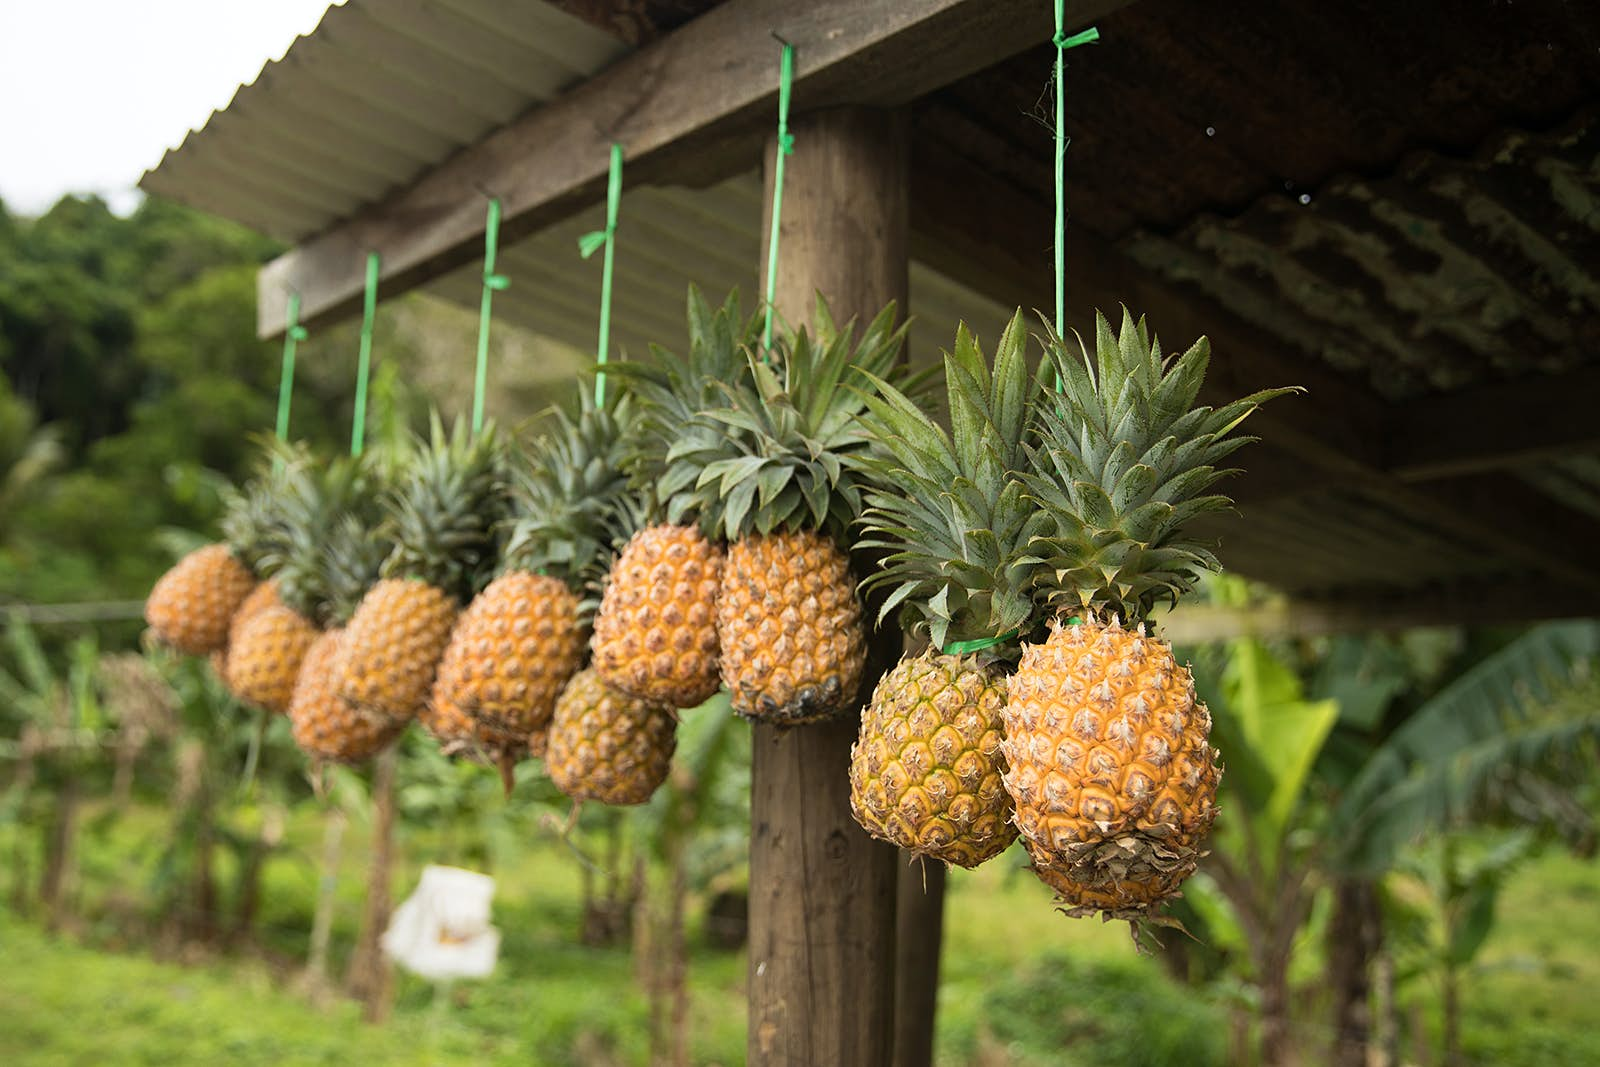 A row of ripe pineapples hanging from strings at a roadside stall in Fiji